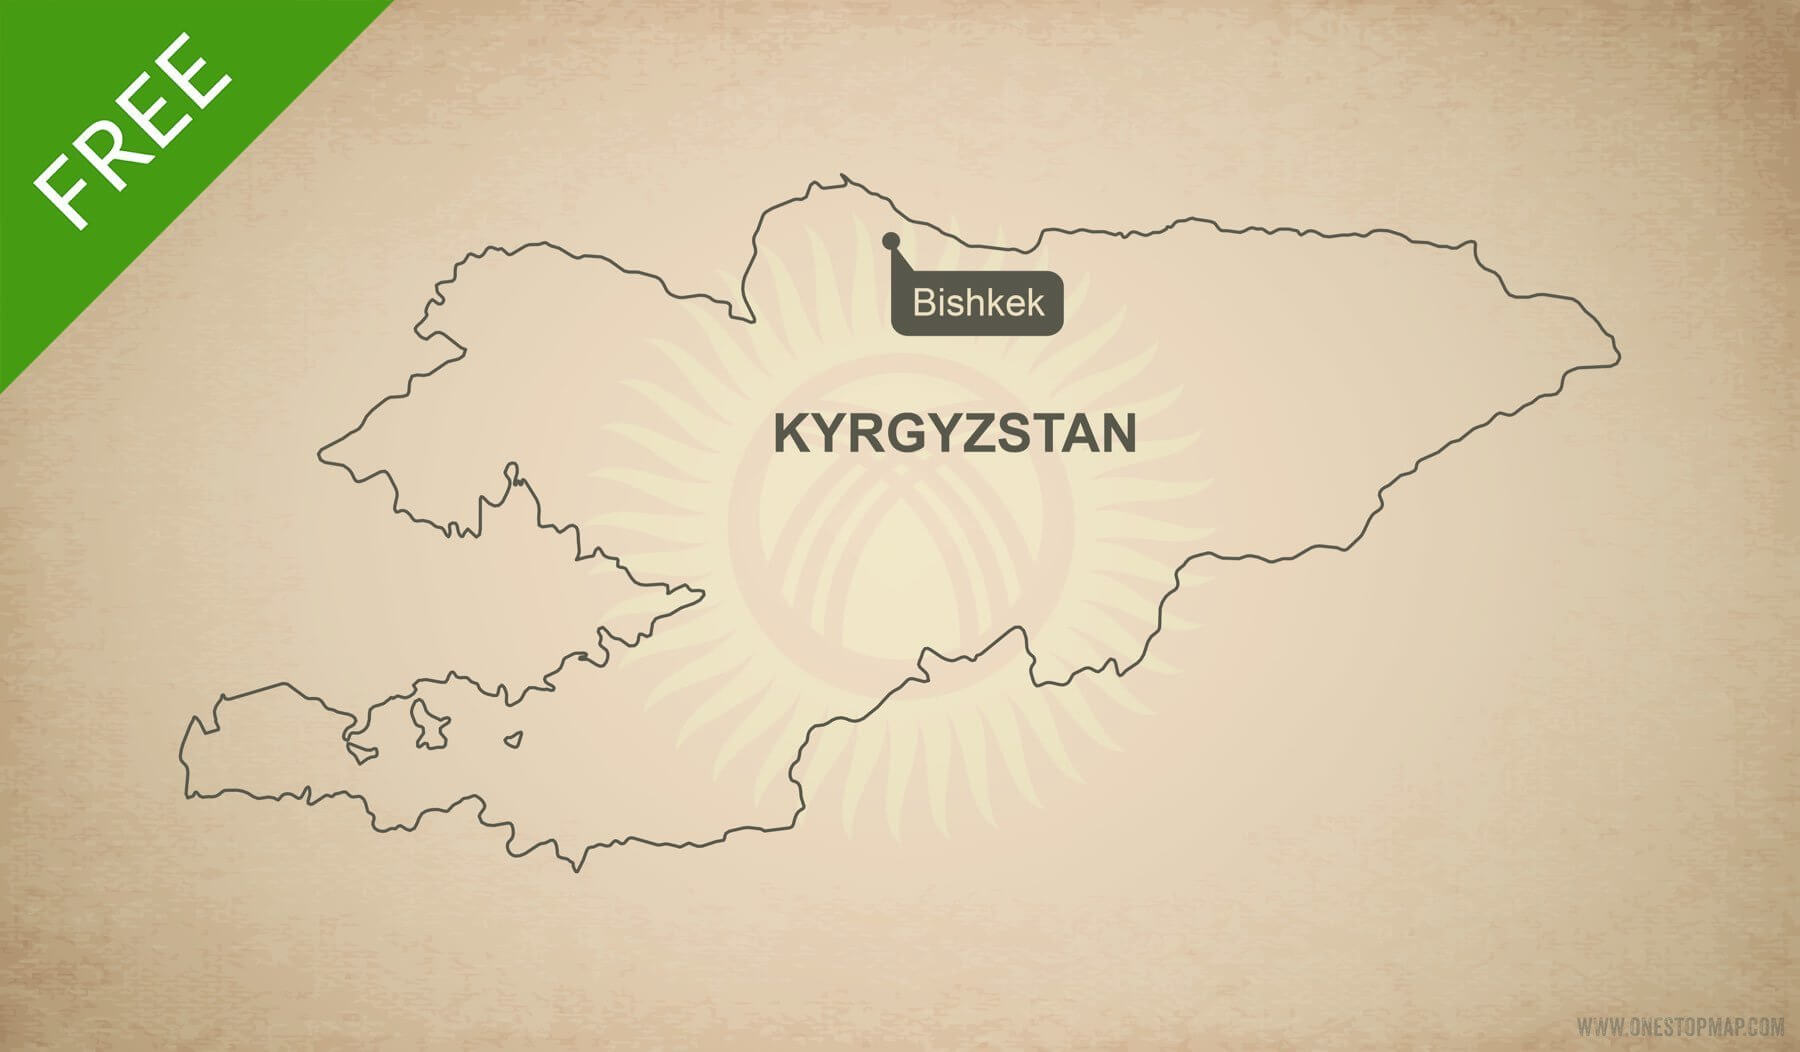 an overview of kyrgyzstan News (finance) kyrgyzstan factions entrenched in the coalition grater zakonovzyateli all five colors, heavily tormented not so much the government thought, how little selfish interests try to find a unilateral consensus, and that personal interest does not hurt visibility, and the common good to observe.